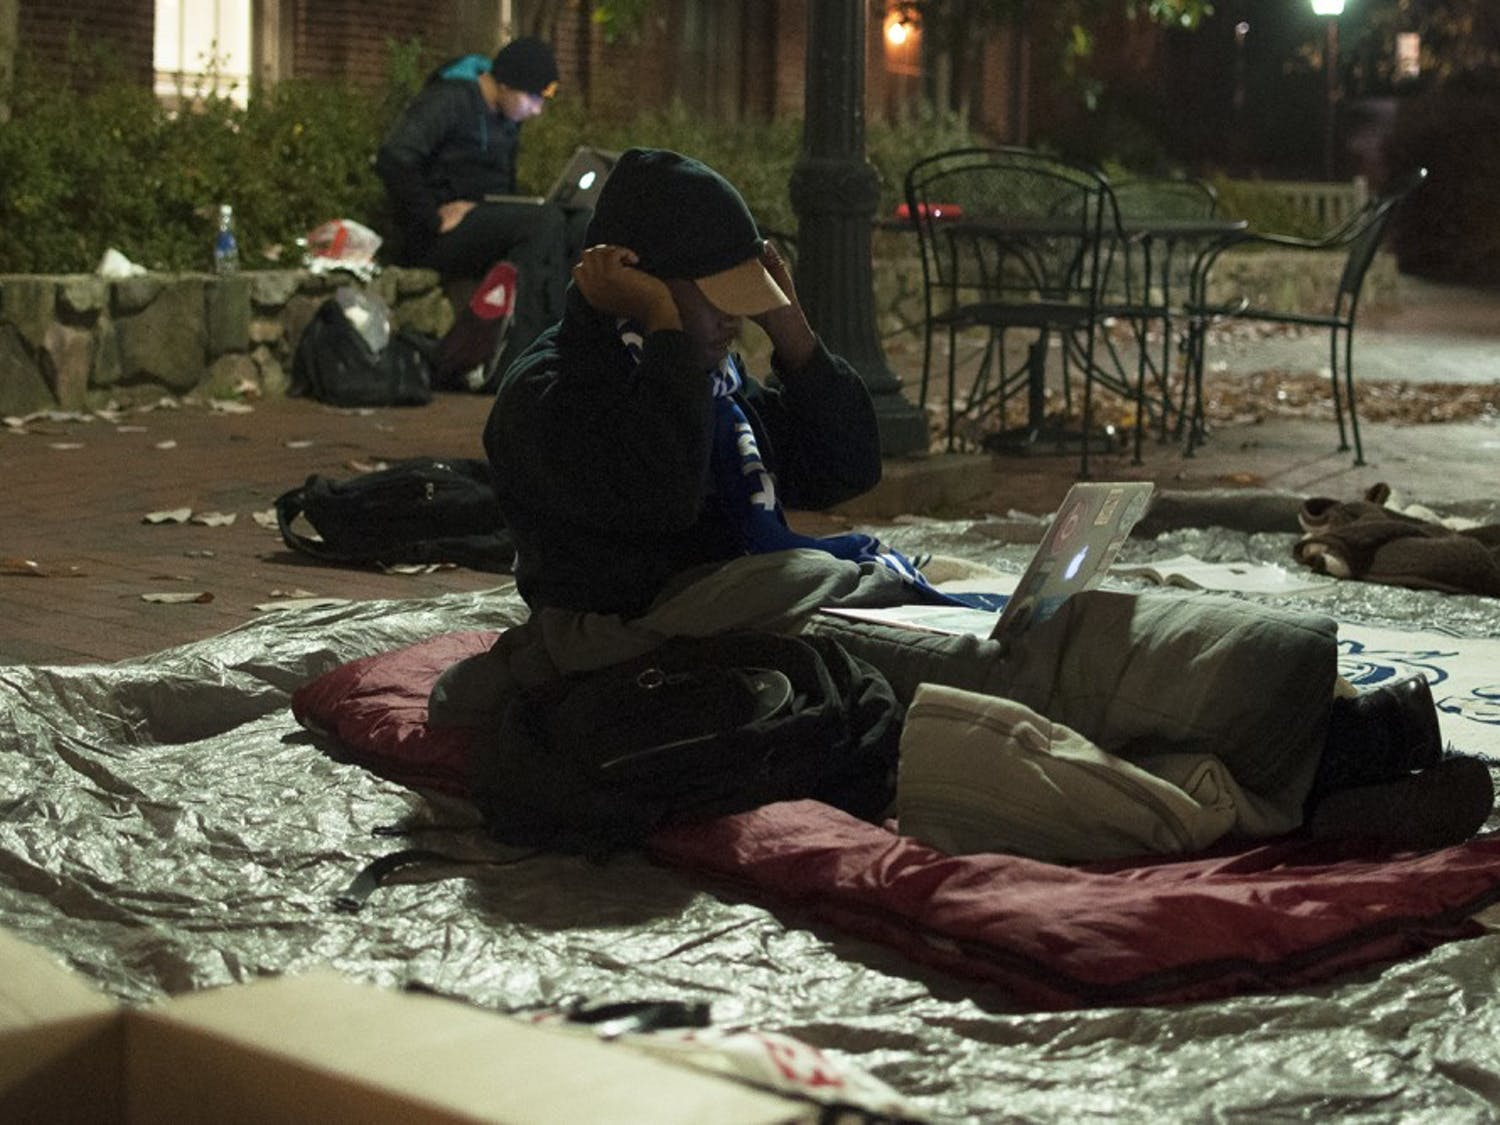 Frank Tillman, president of Phi Beta Sigma fraternity, sleep out for the homeless in the SASB Plaza taking donations for the homeless shelter on Franklin Street.